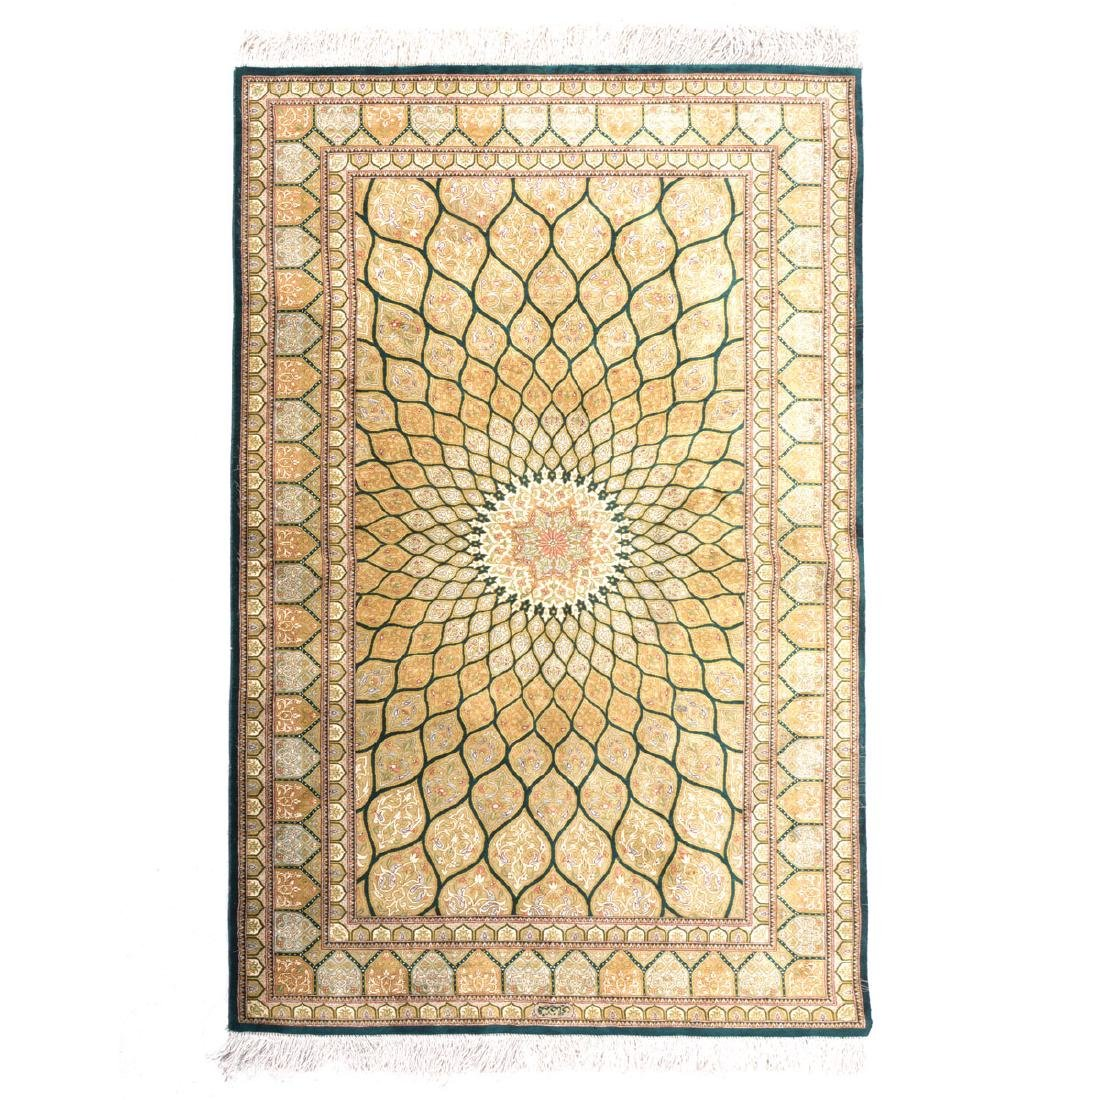 Qum Silk Prayer Rug: 3 feet 2 1/2 inches x 5 feet 1